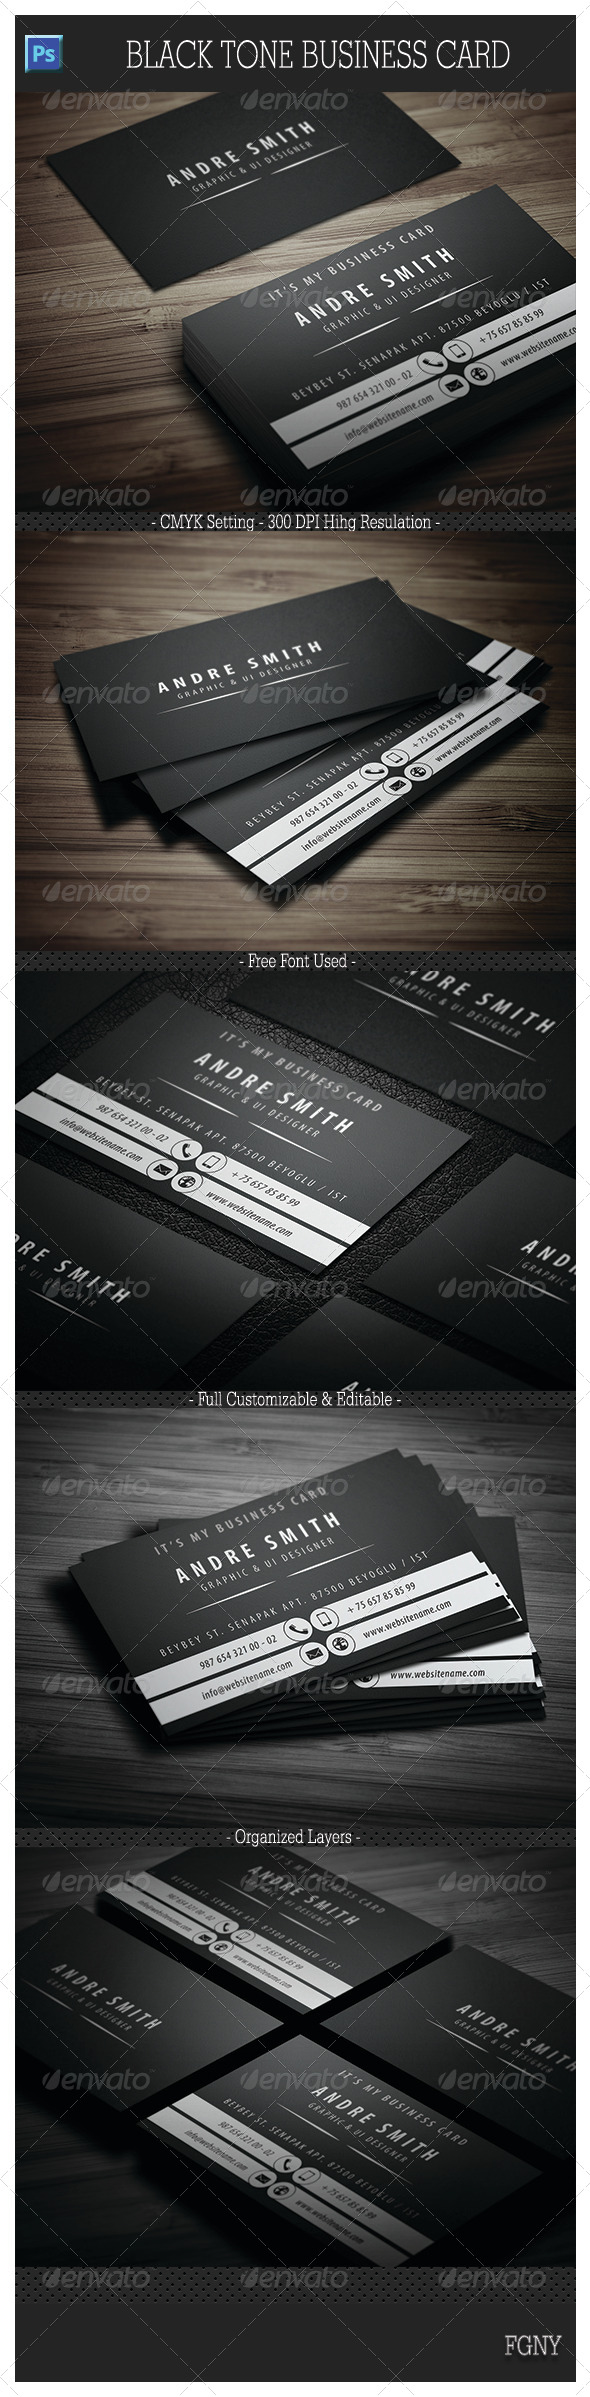 Black Tone Business Card  - Creative Business Cards